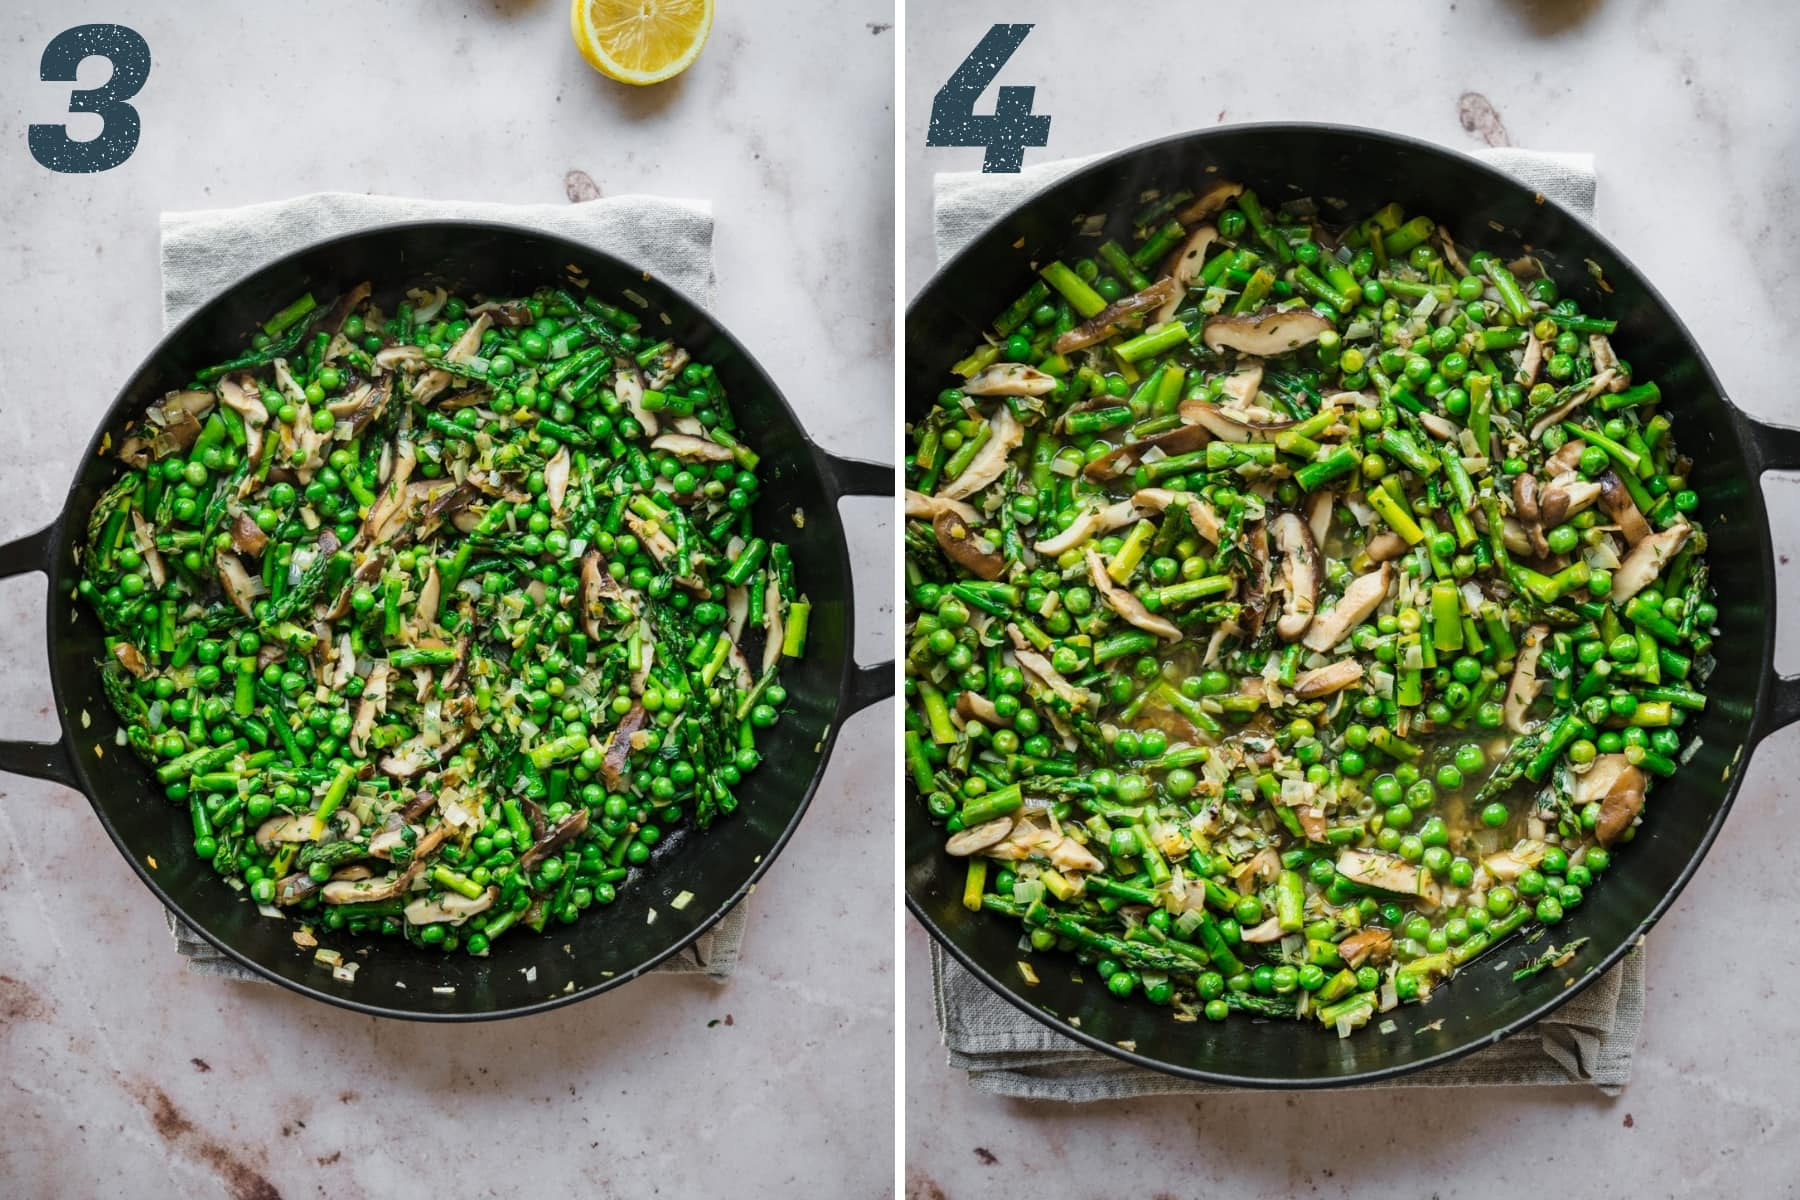 before and after adding broth, lemon juice and white wine to sautéed asparagus, peas and mushrooms in a large cast iron skillet.